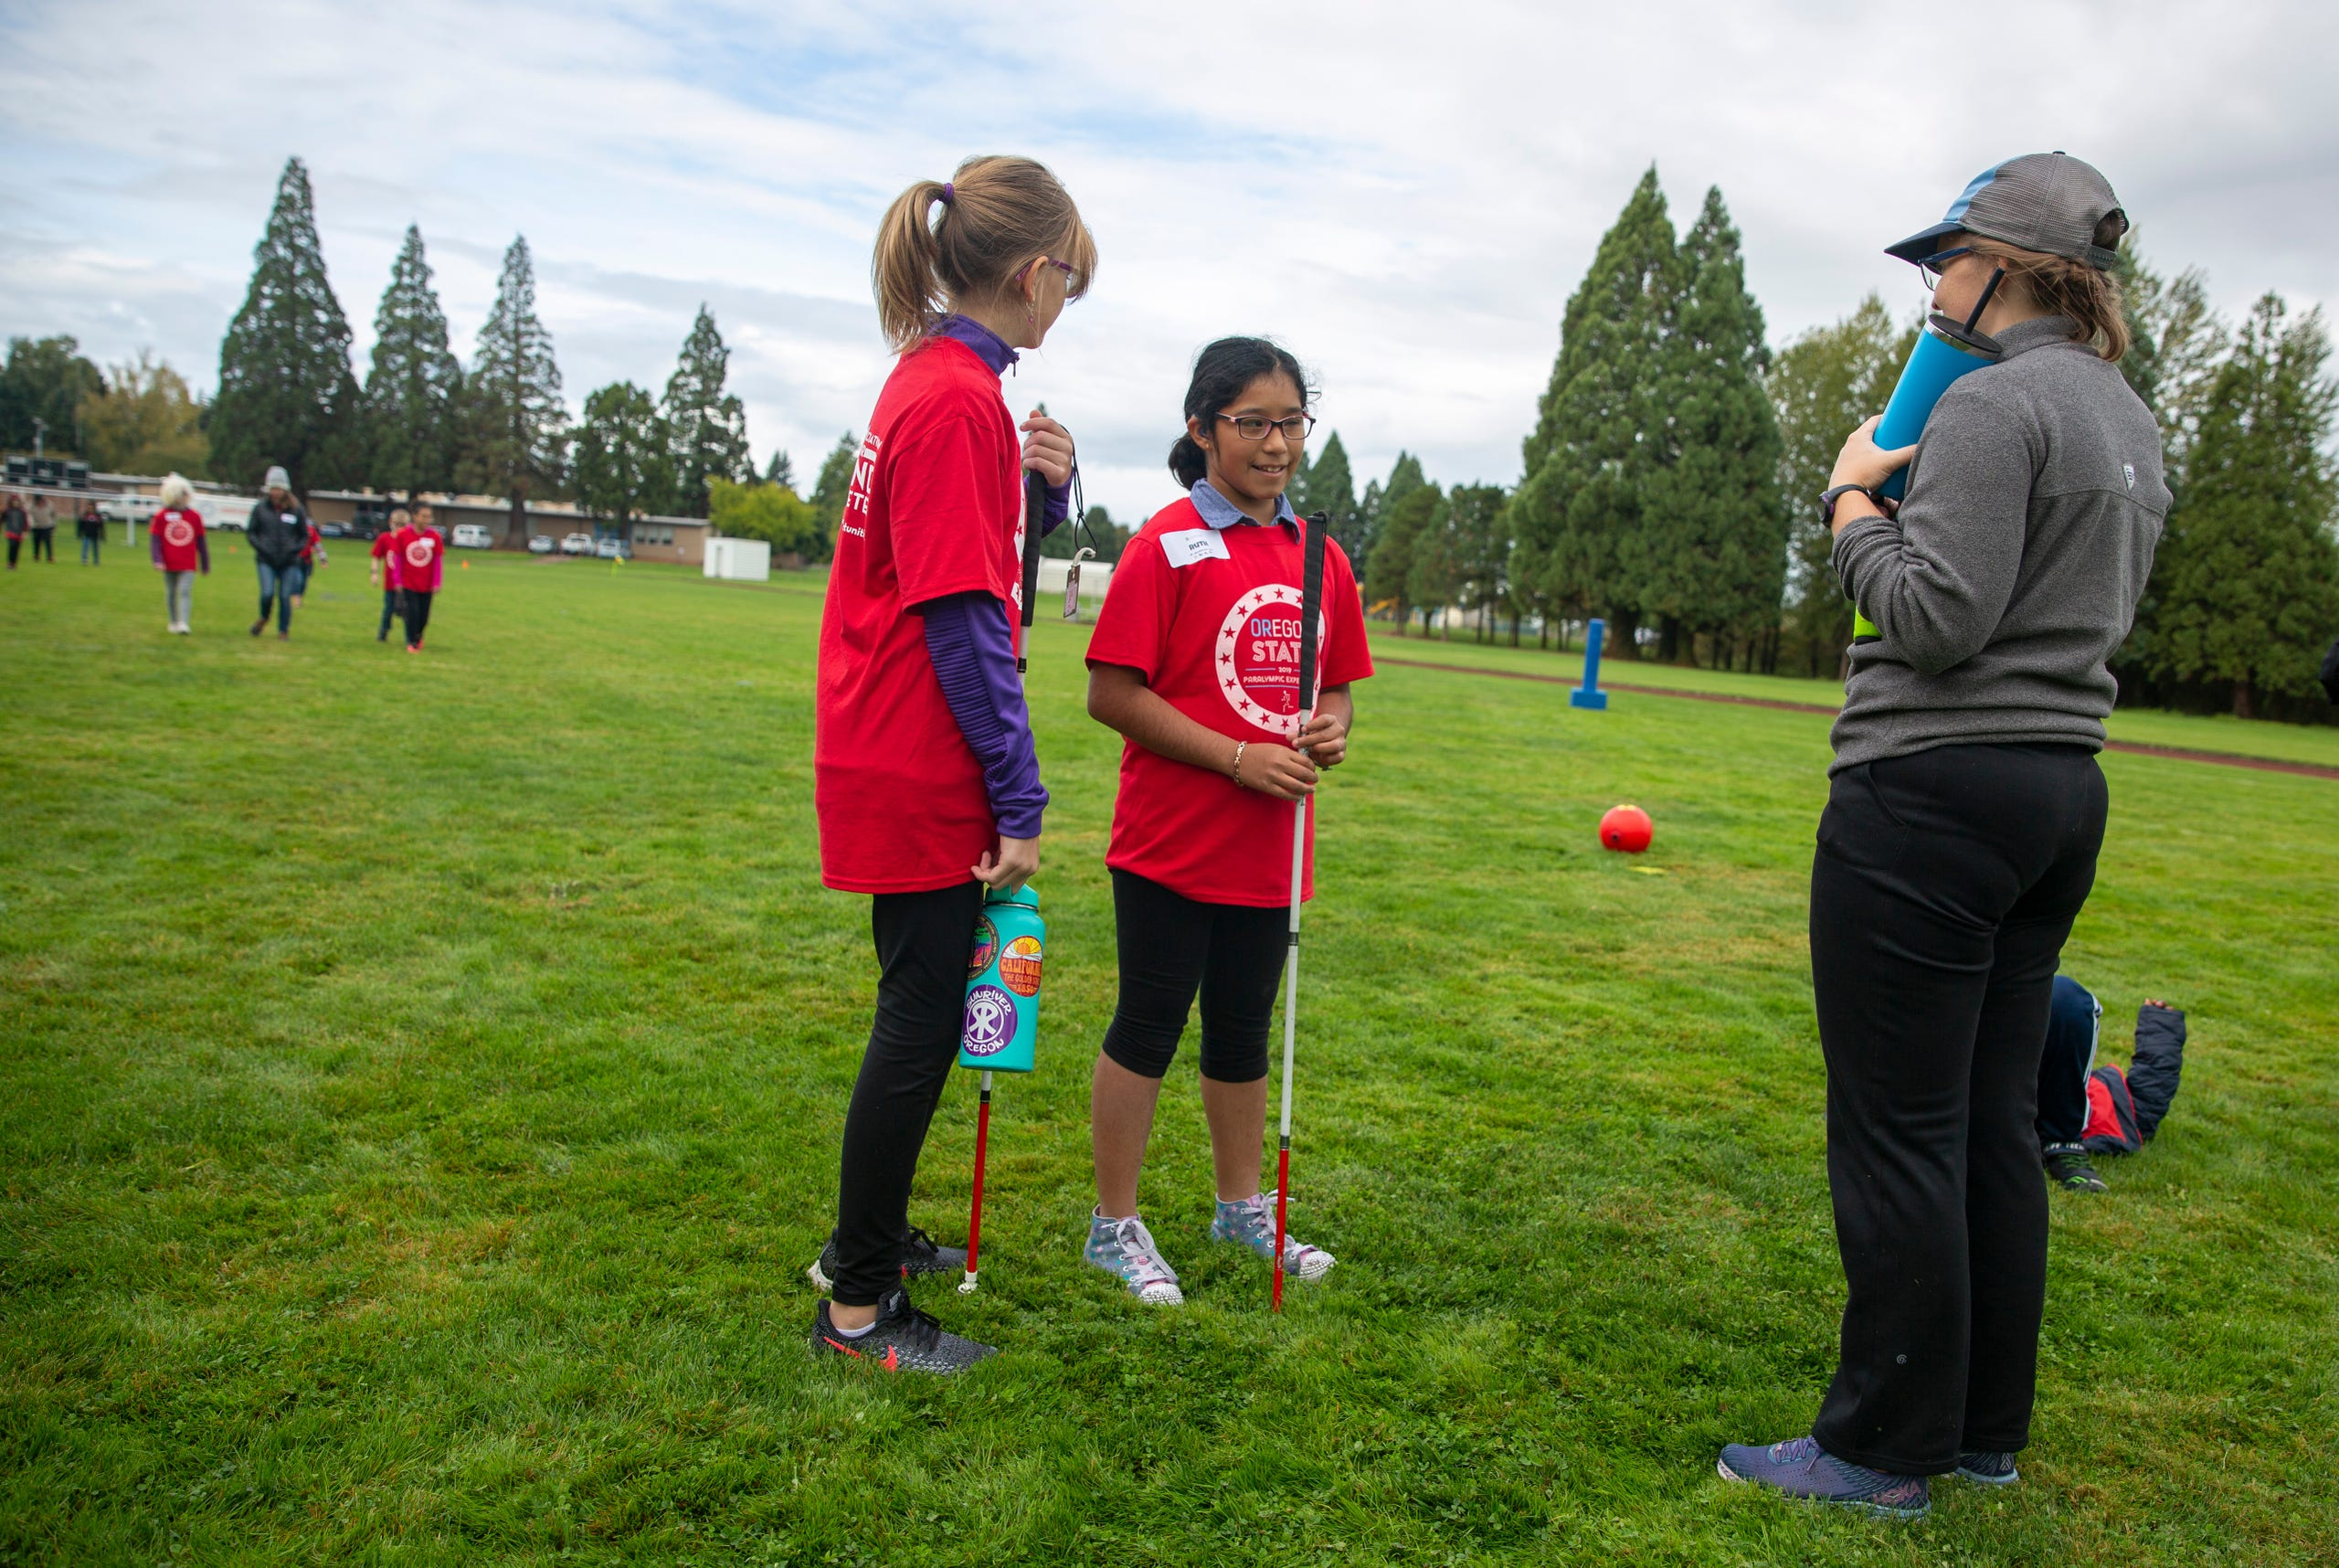 "Ellen Shrout, in 7th grade, and Ruth Gongora, in 6th, talk to a beep kickball instructor at the Oregon School for the Deaf in Salem, Oct. 4, 2019. NWABA, the Northwest Association for Blind Athletes, hosted a ""Paralympic experience"" for students with visual impairments in the state. After the Oregon School for the Blind closed in 2009, many visually impaired students and their families lost access to state-funded resources, like sports programs. The BVIS (Blind Visually Impaired Student) Fund gives programs like NWABA funds to enhance the lives of low vision/blind children across the state."